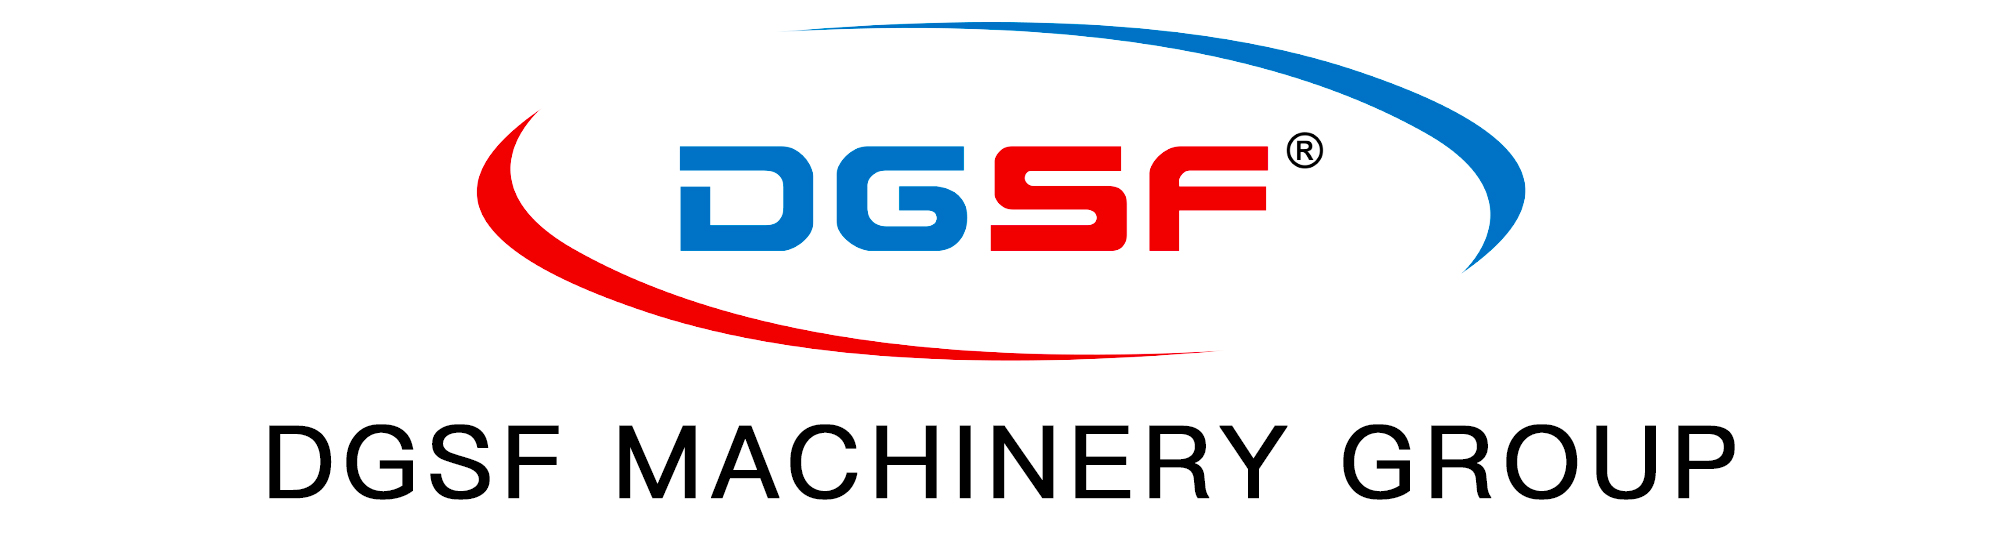 DGSF MACHINERY GROUP